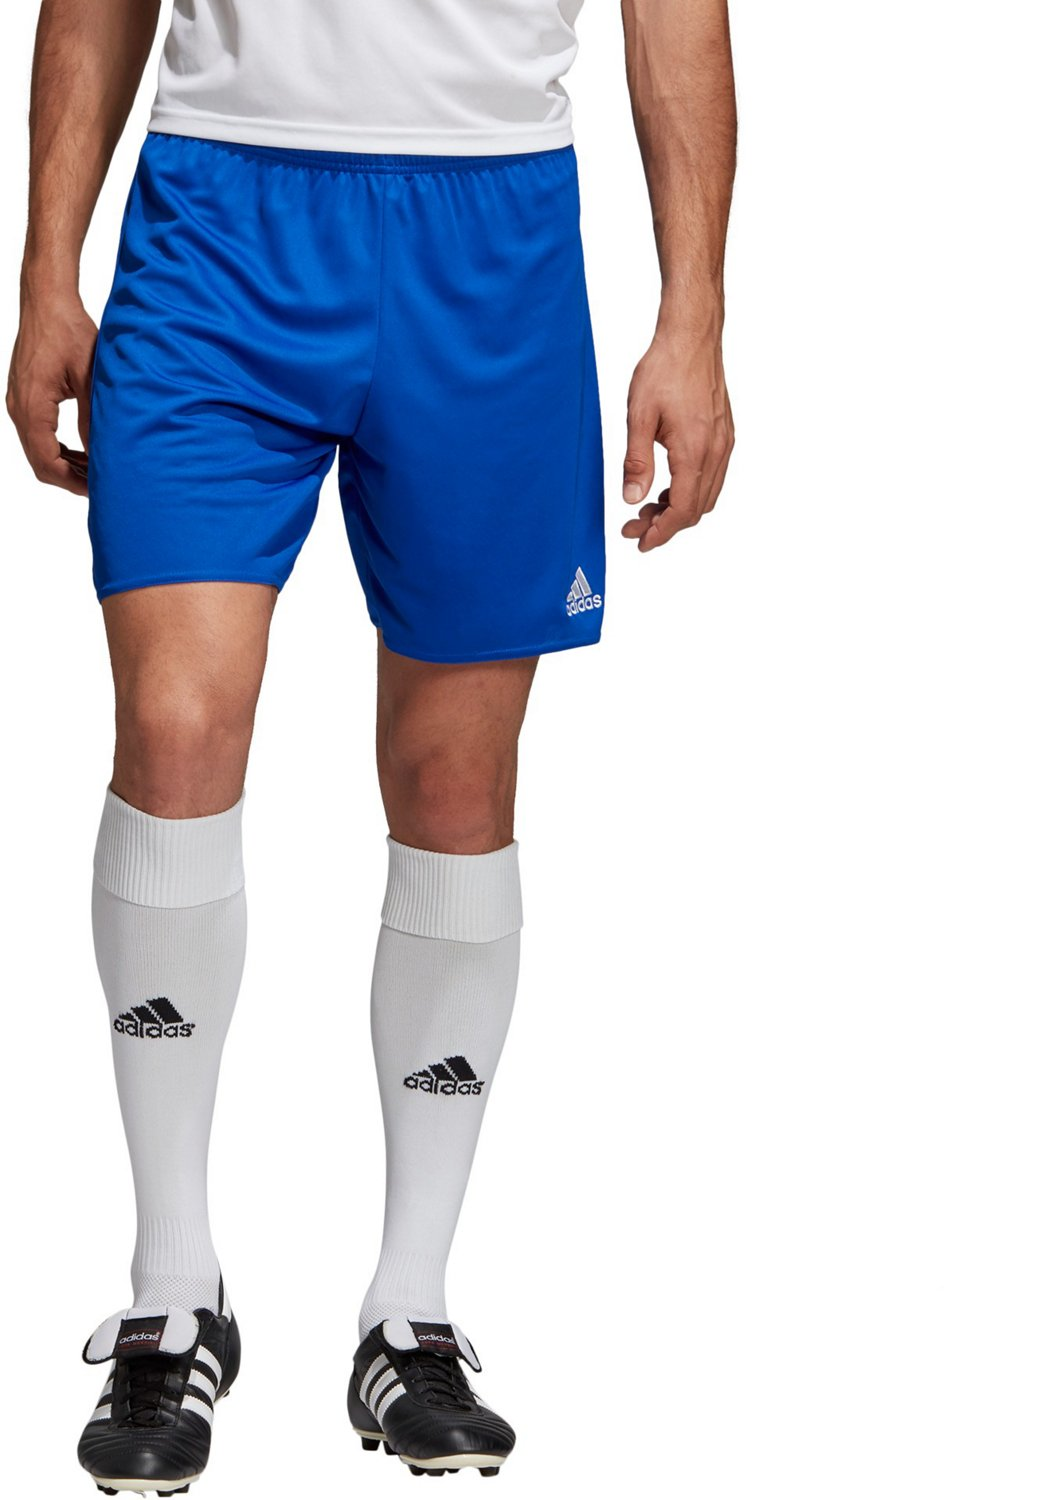 dfd434da4dc8 Display product reviews for adidas Men s Parma 16 Soccer Short